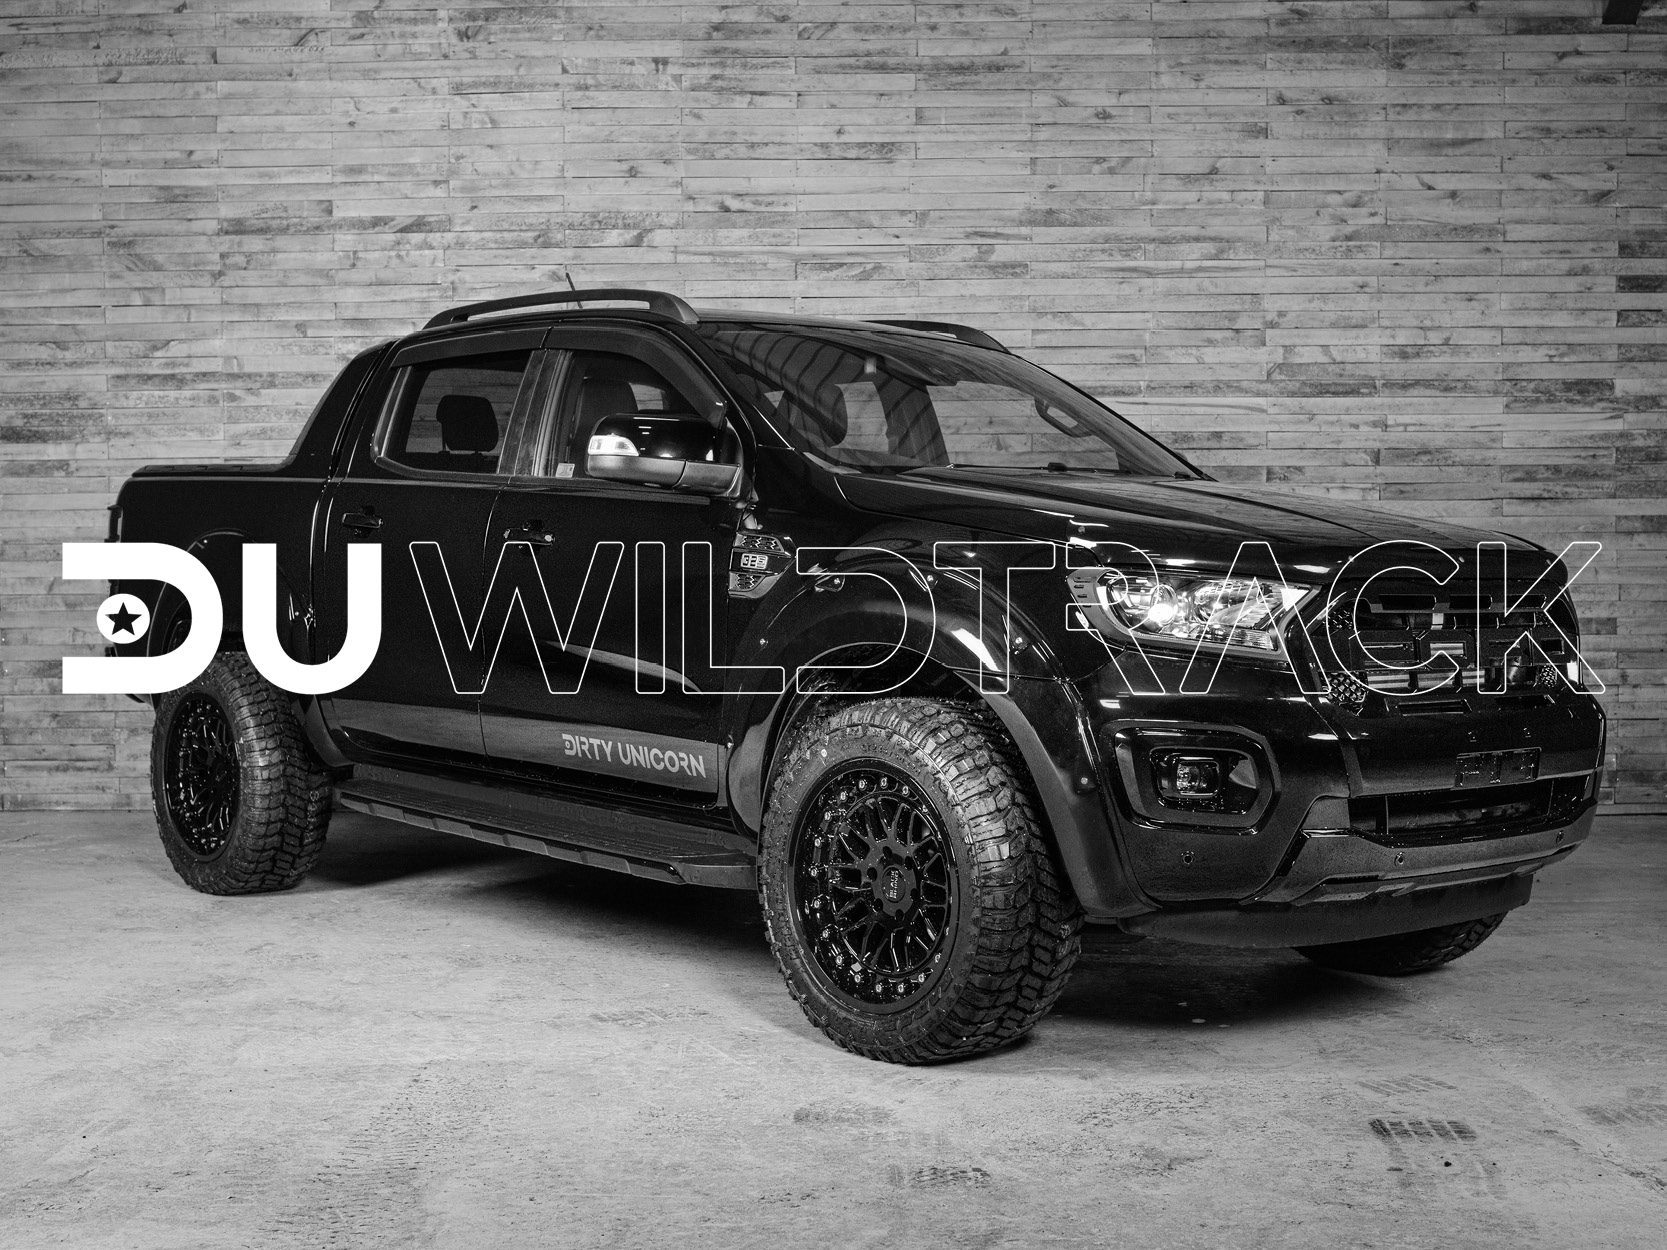 ranger truck with DU wildtrack package